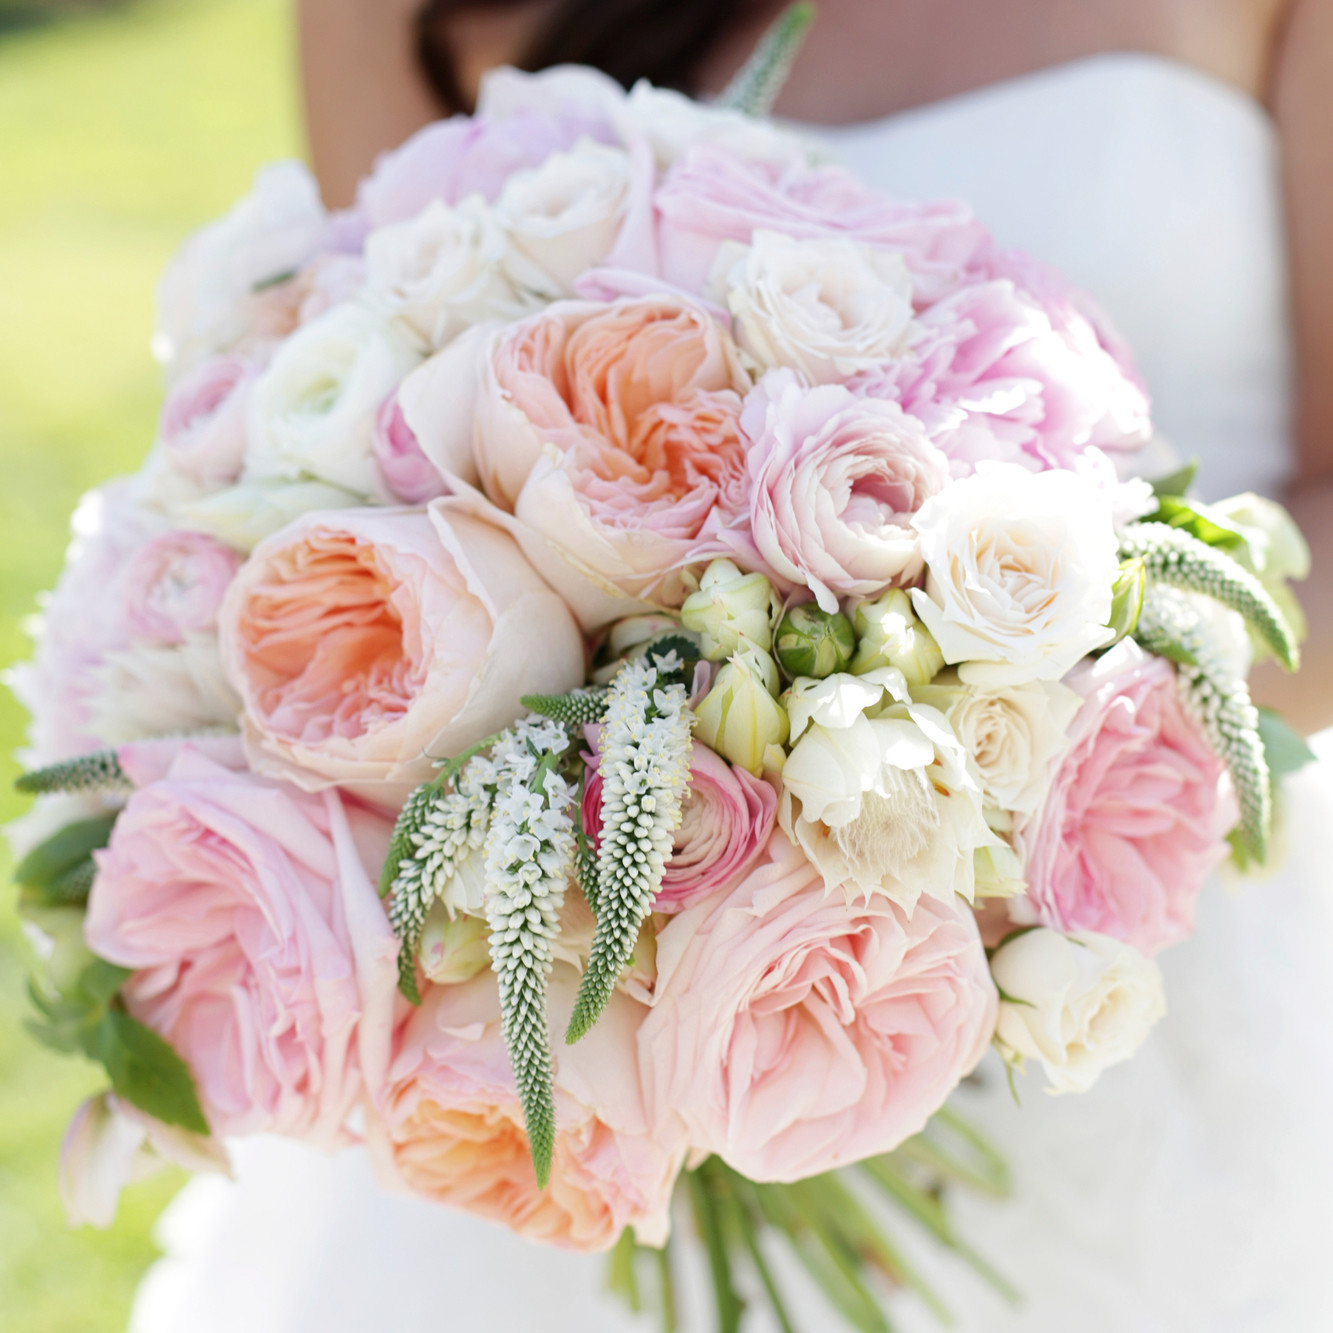 rose wedding bouquets pictures photo - 1